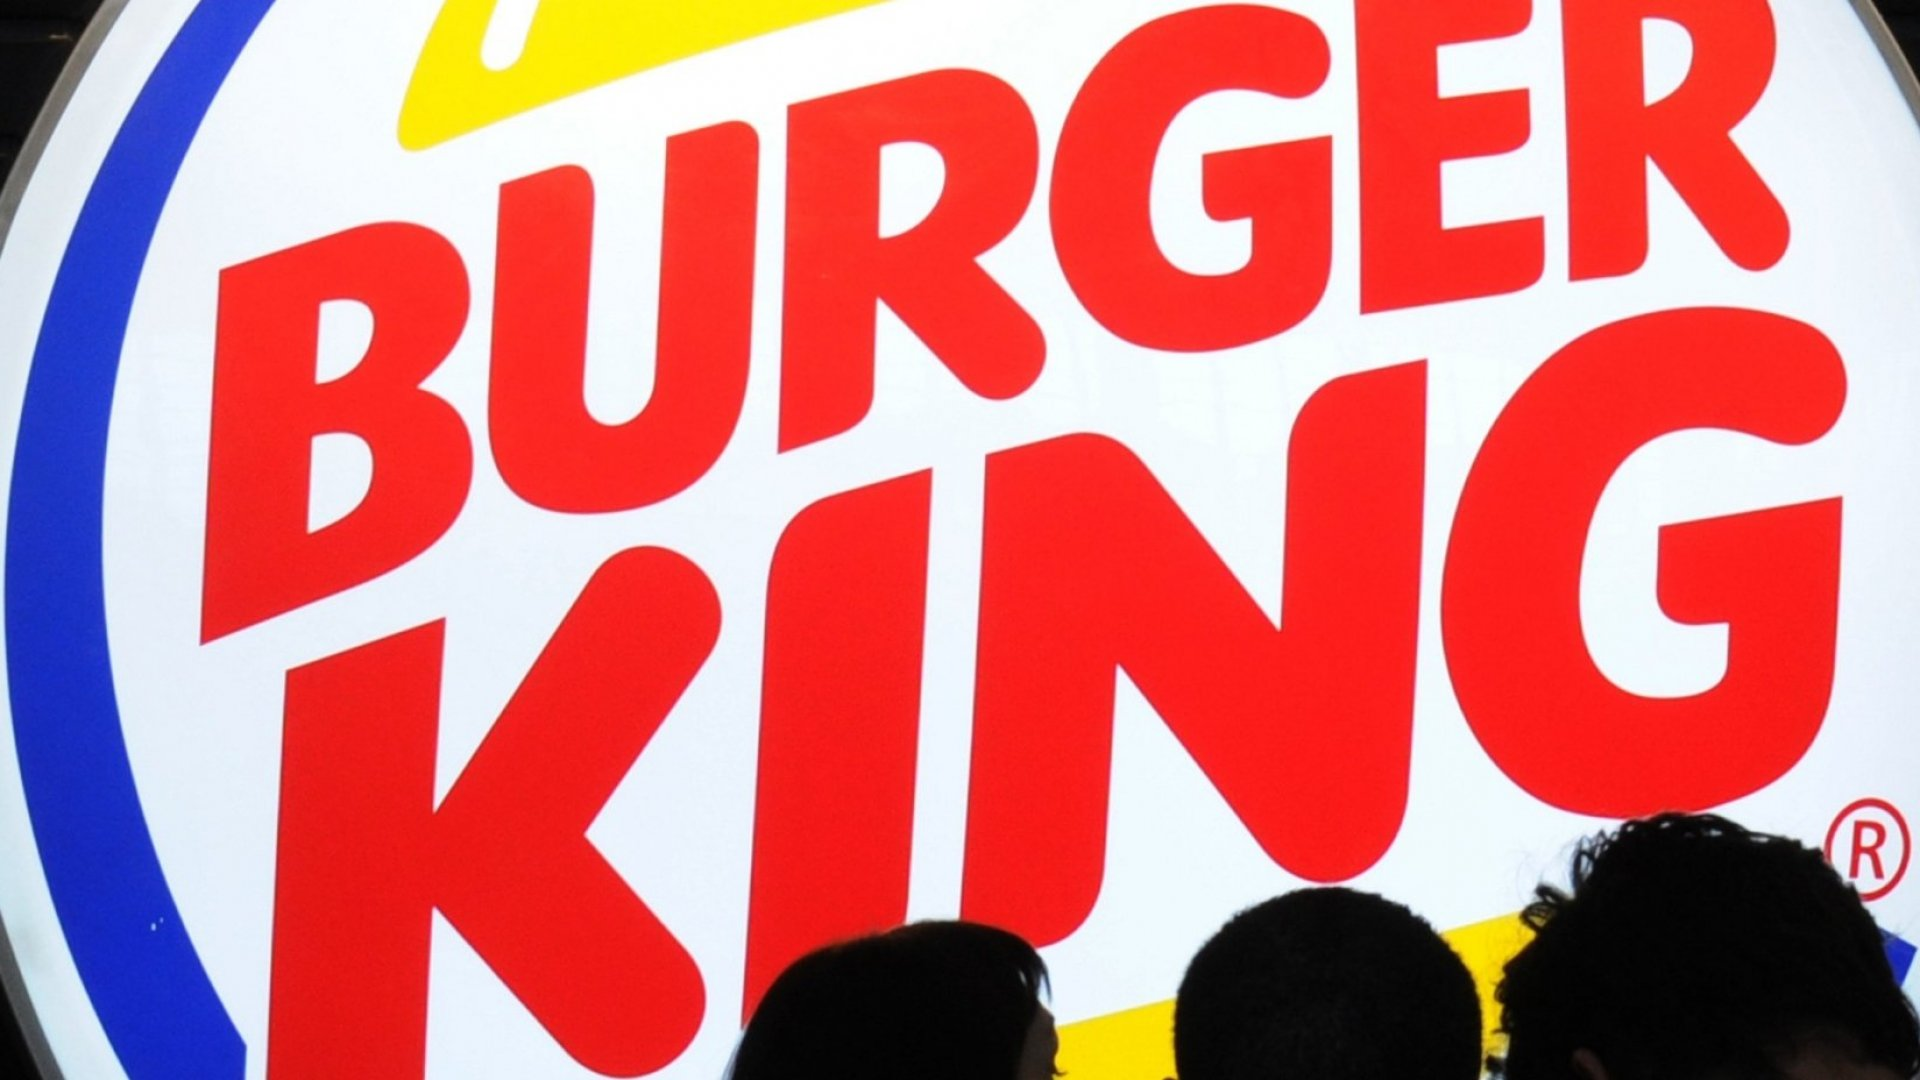 I Tried the New Burger King App That Lets You Order a '1-Cent Whopper' at McDonald's. (It's Definitely Worth Every Penny)